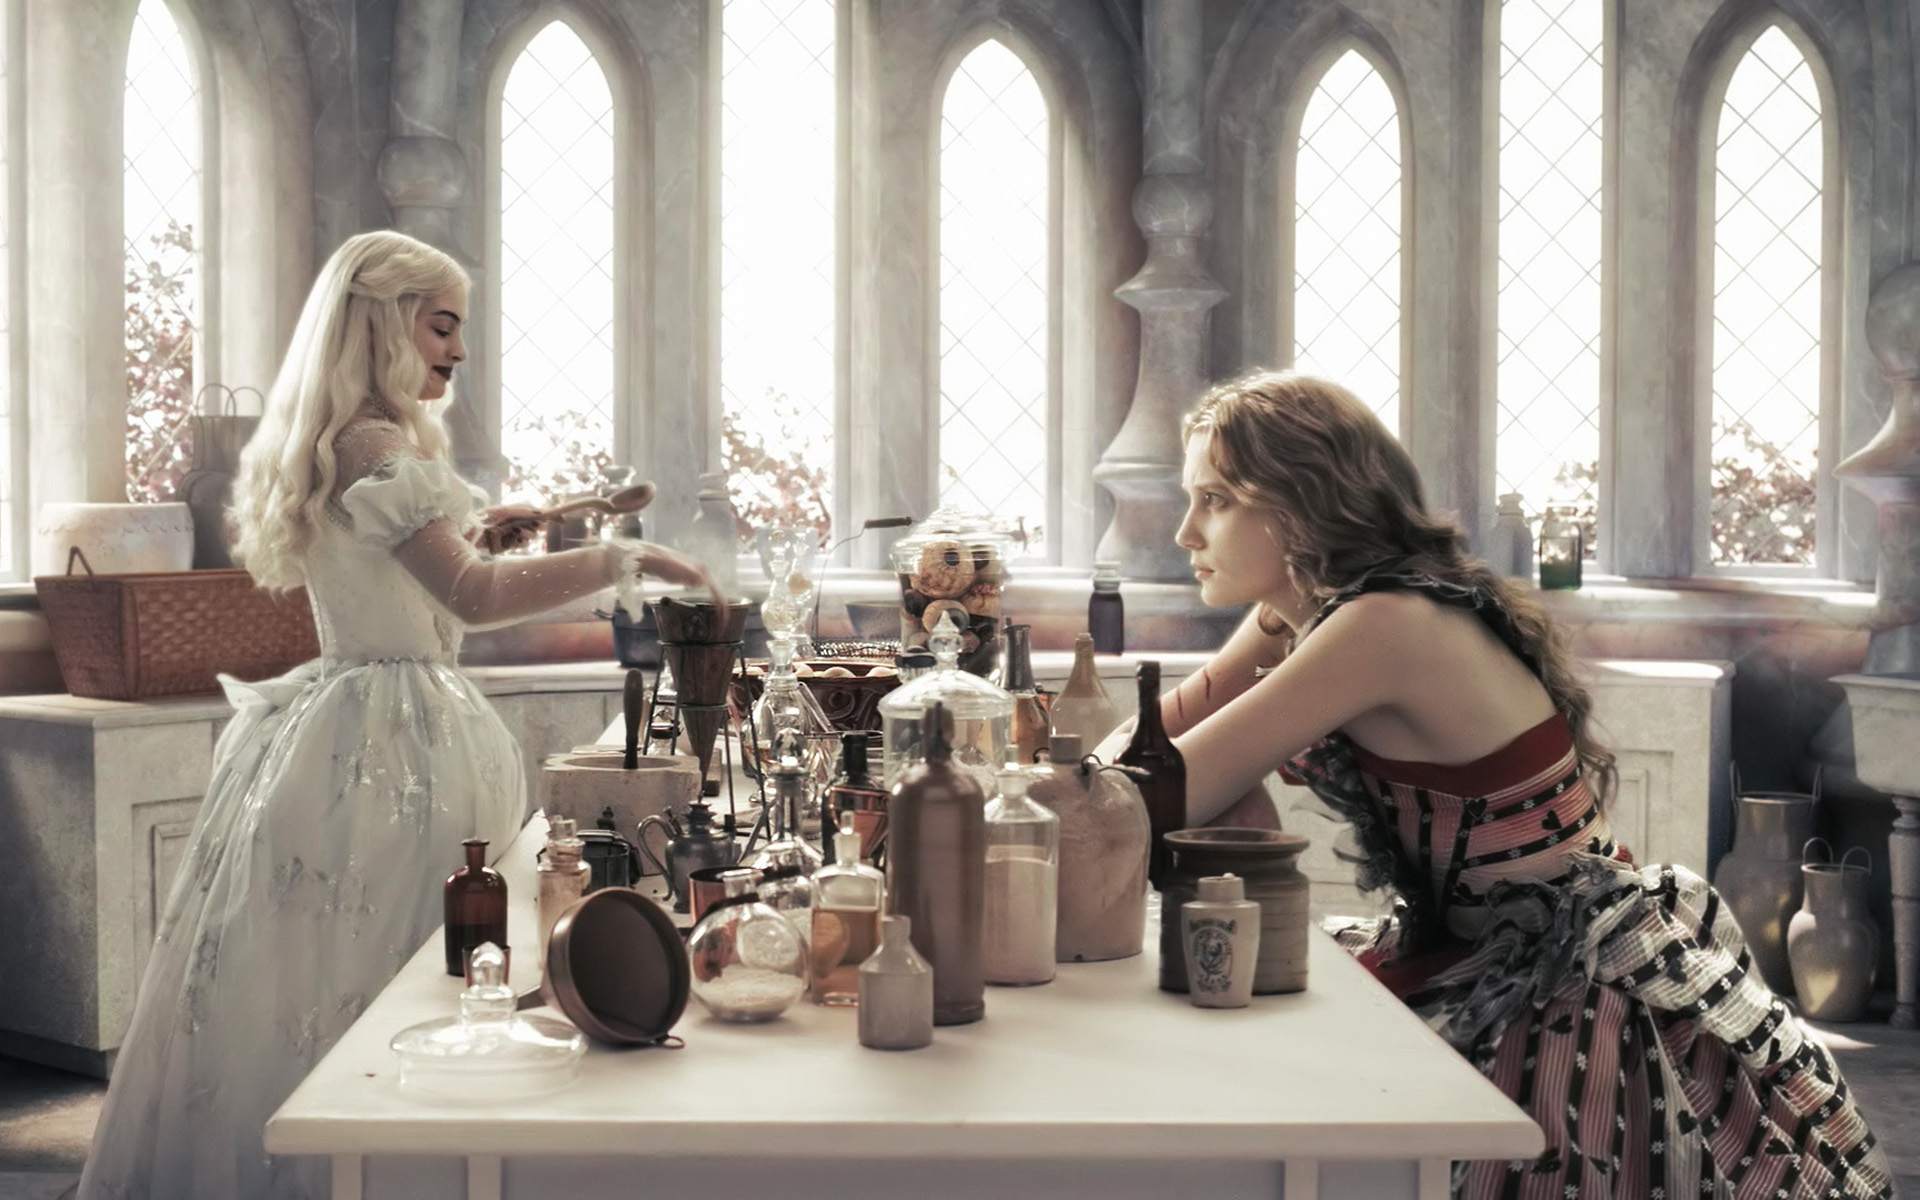 alice in wonderland movie wallpapers collection 7 (1920 x 1200